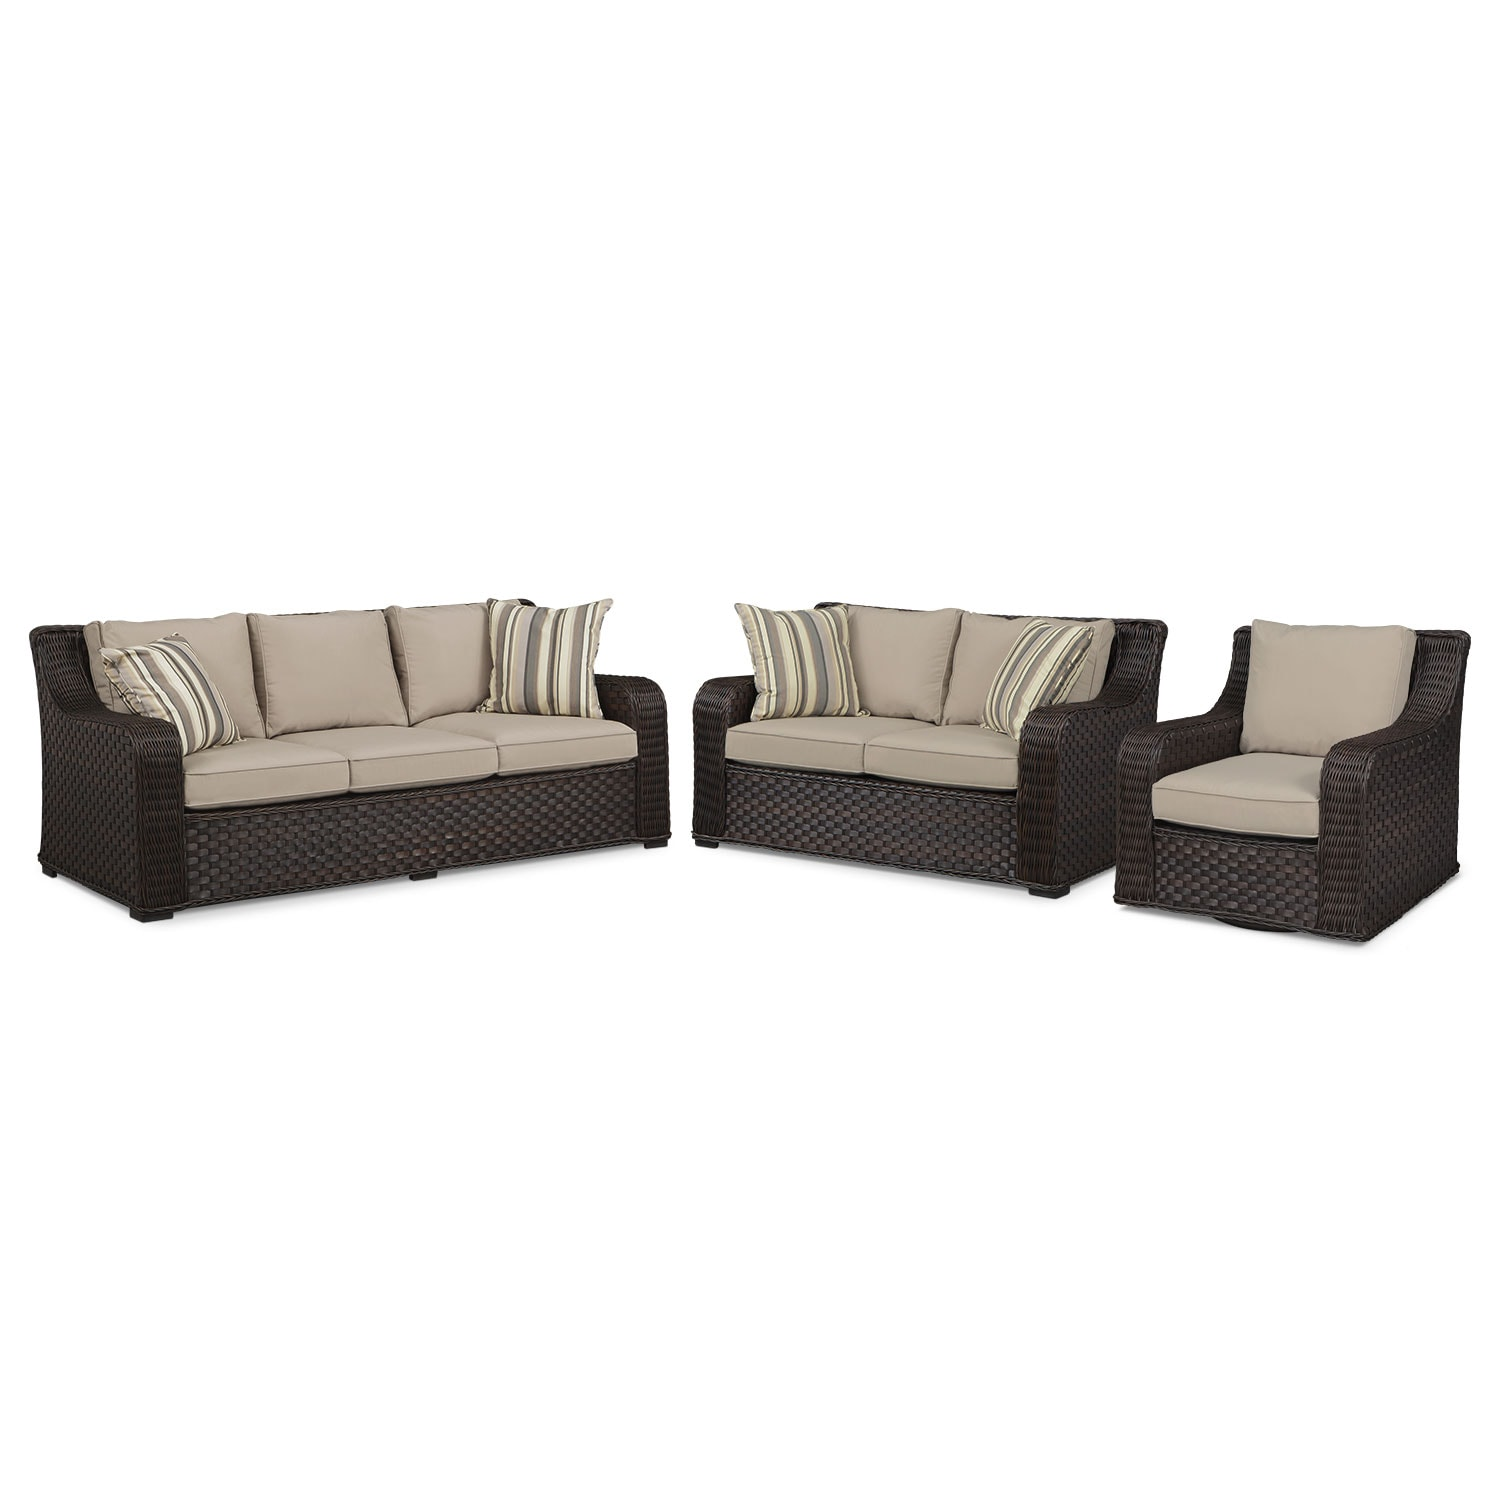 Doral Outdoor Sofa, Loveseat and Swivel Rocker Set - Tan